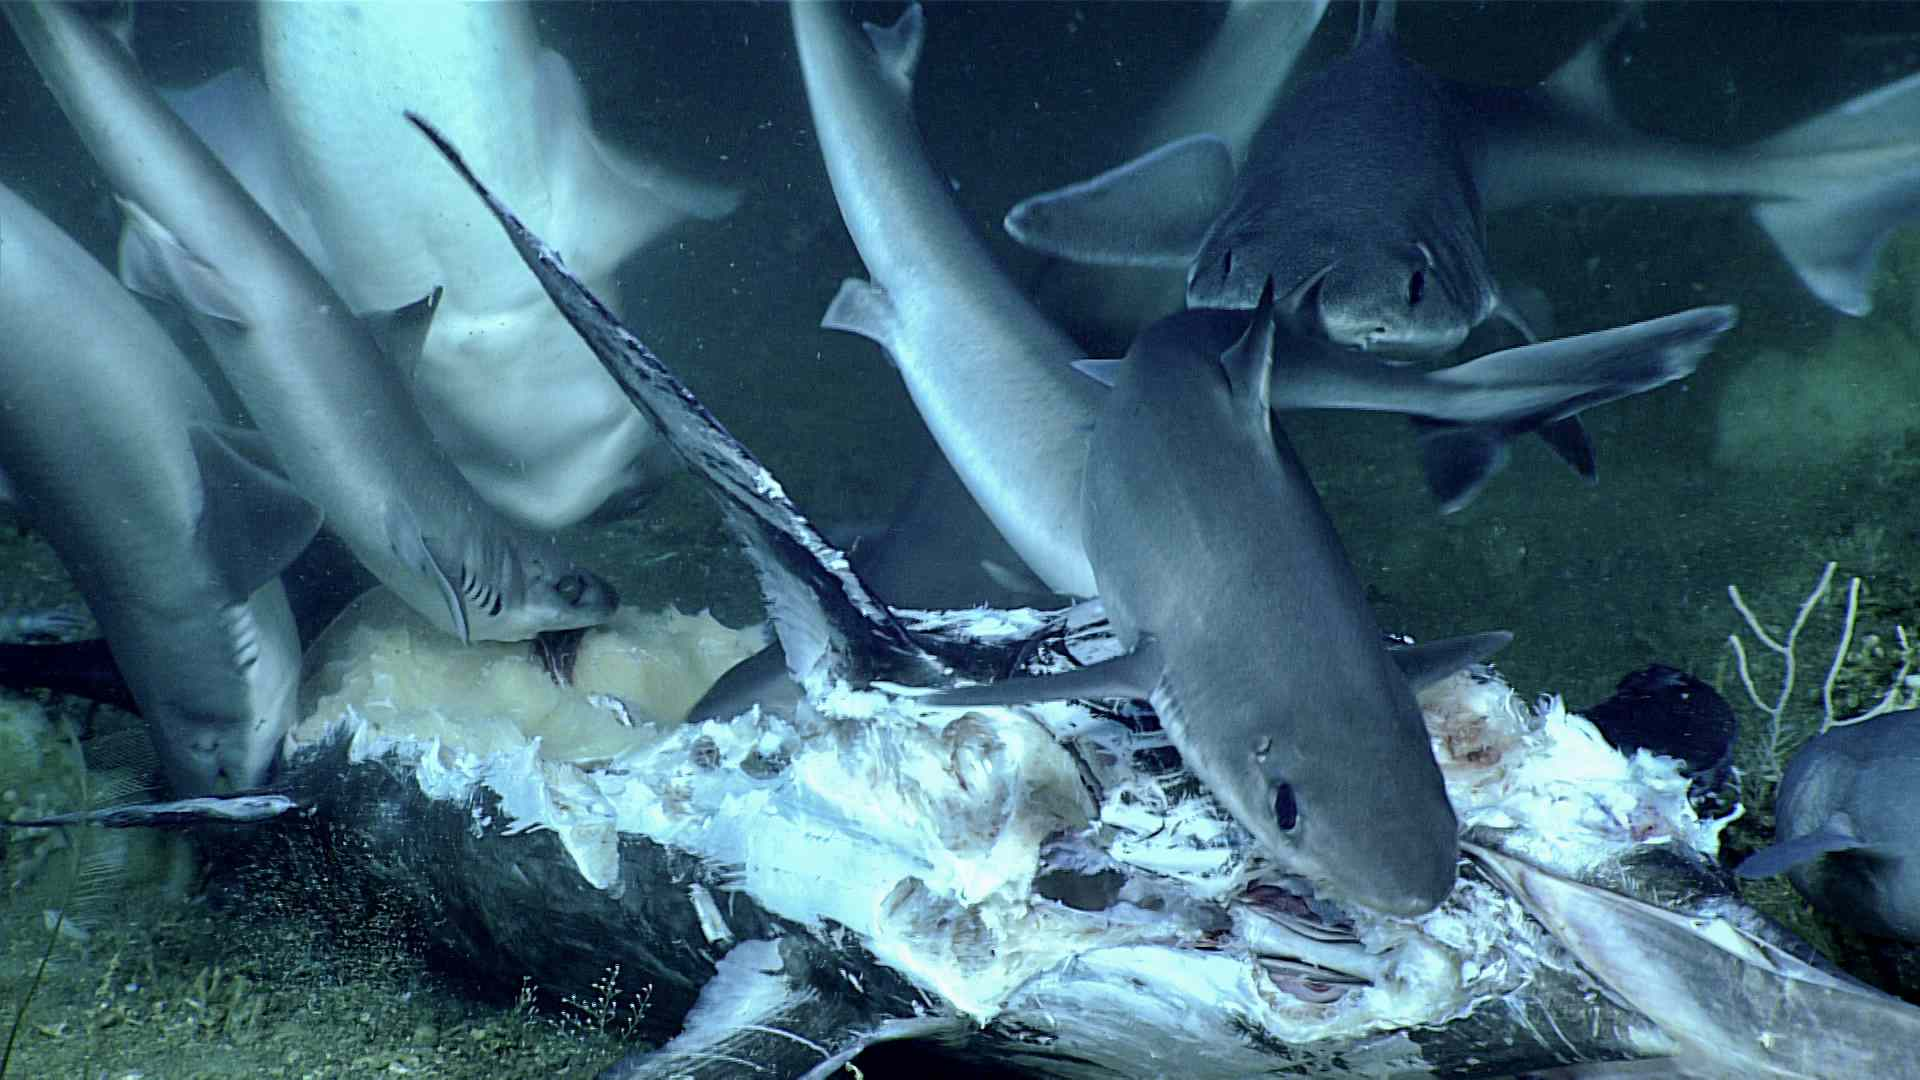 Dogfish eating the carcass of a swordfish.